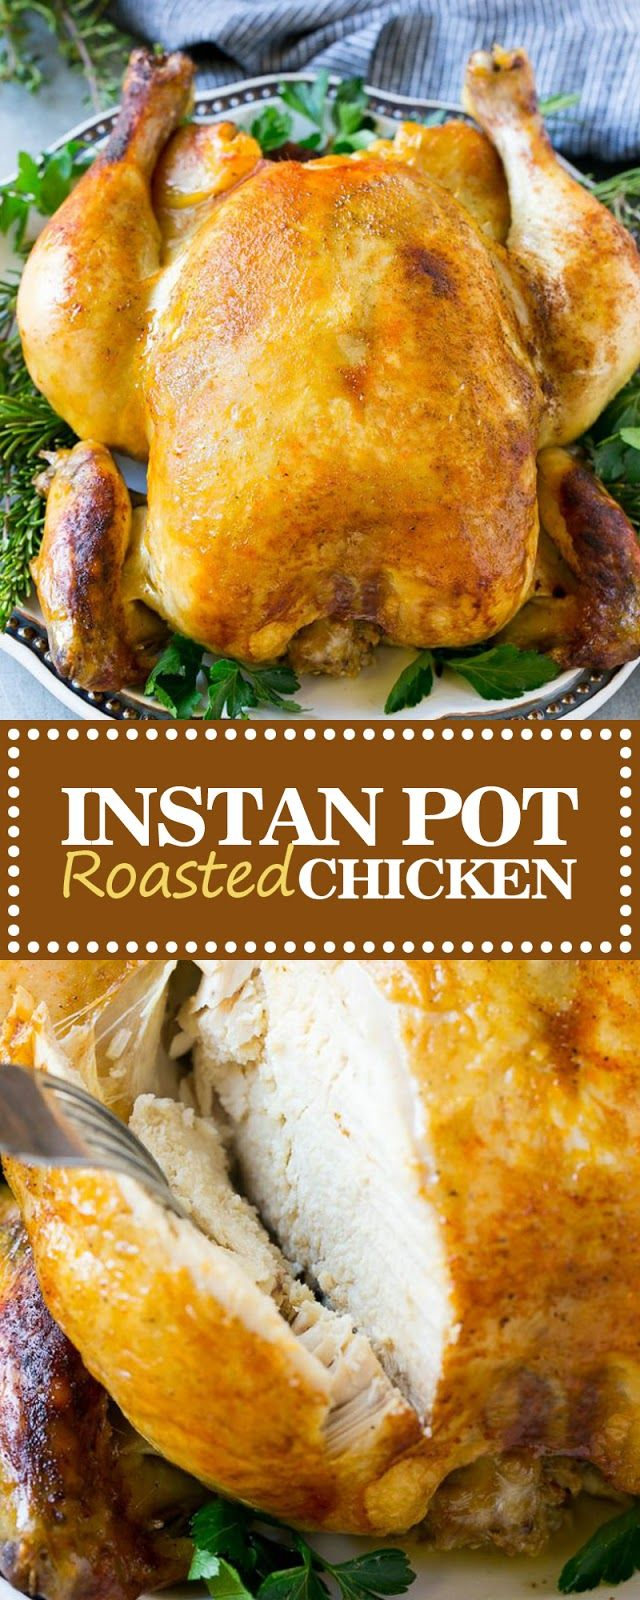 INSTANT POT ROASTED CHICKEN images